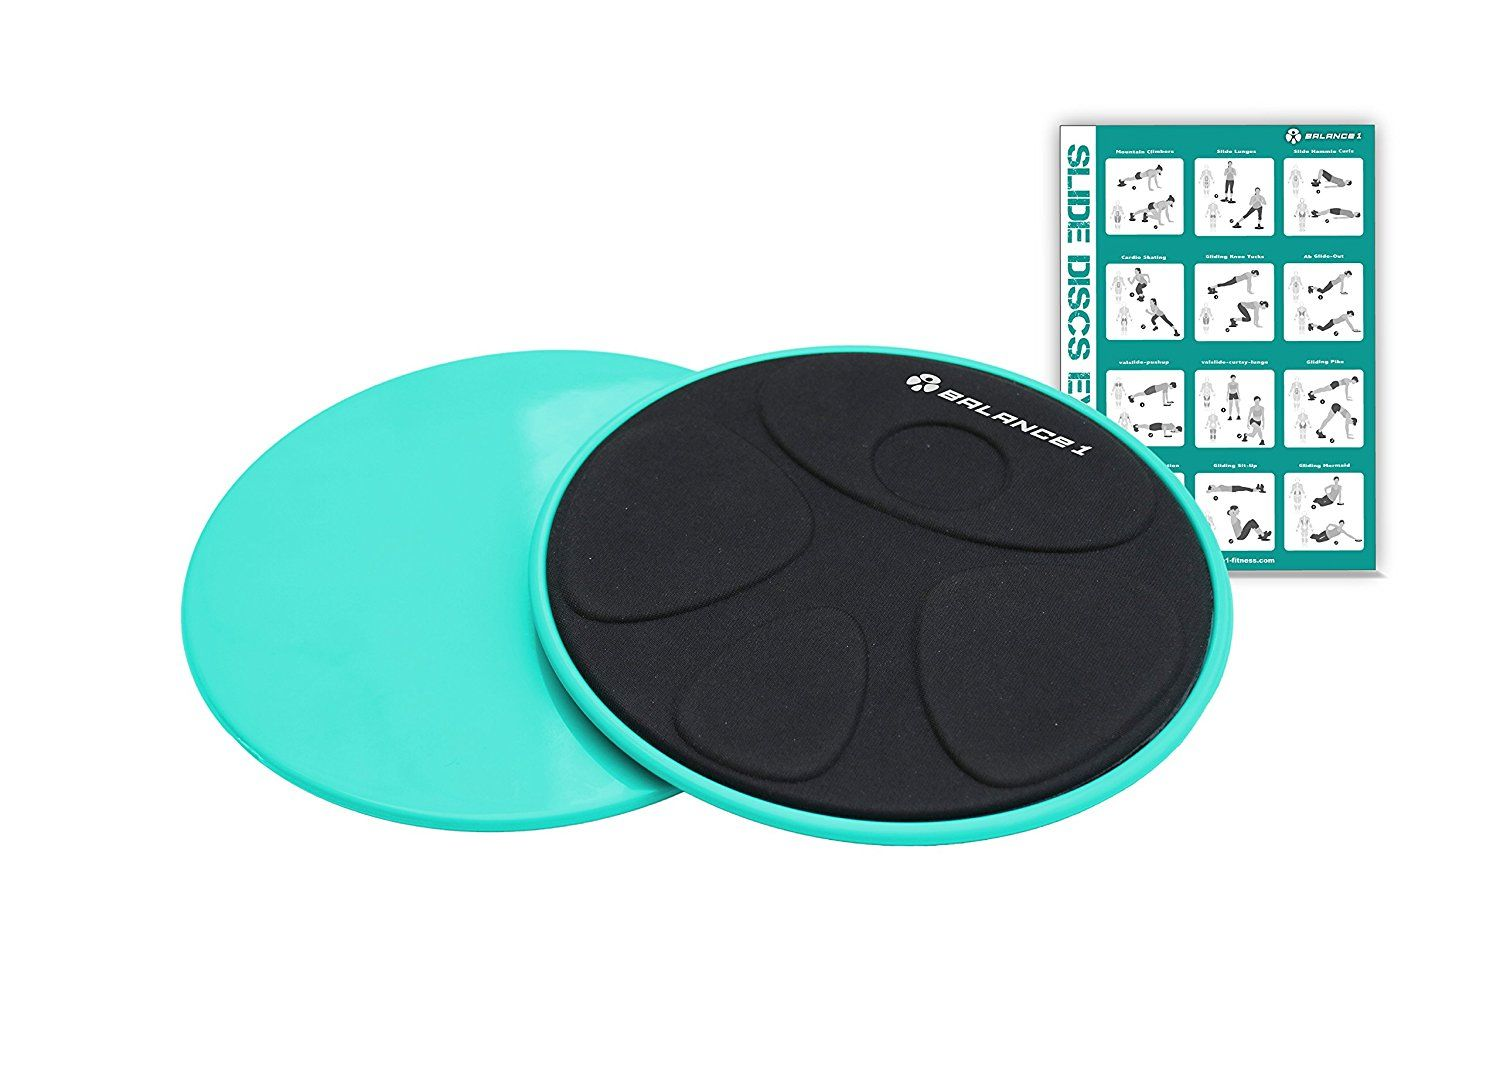 79adc2f1c077 Amazon.com   Balance 1 Core Sliders Disc-For hardwood floor or  carpet-Tiffany Blue w  FREE instruction poster   Sports   Outdoors